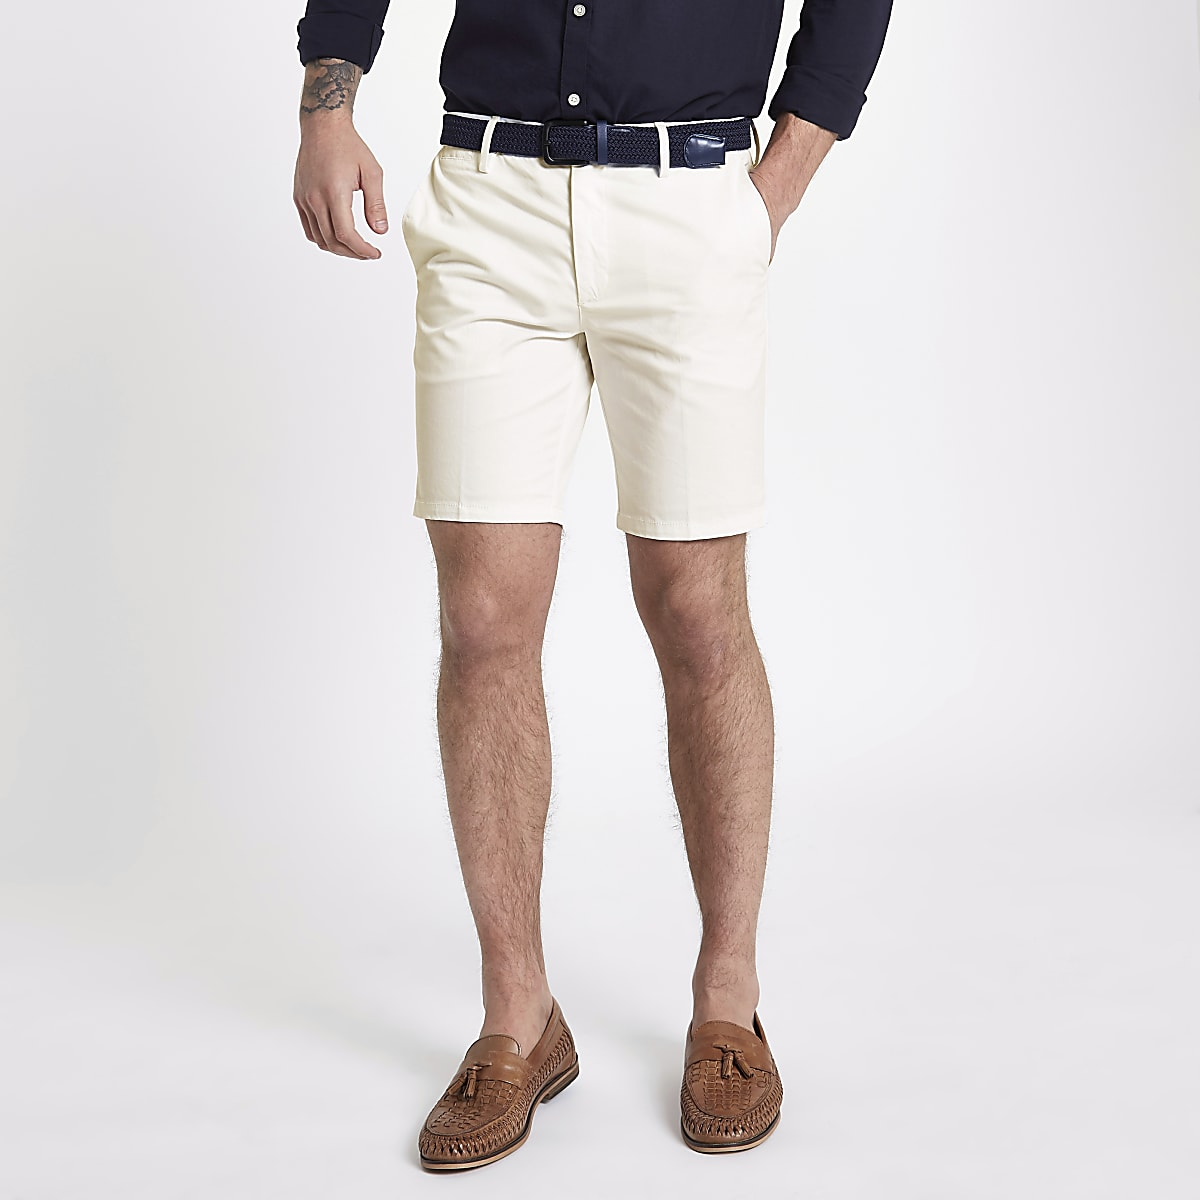 abf5425478 White slim fit belted chino shorts - Smart Shorts - Shorts - men